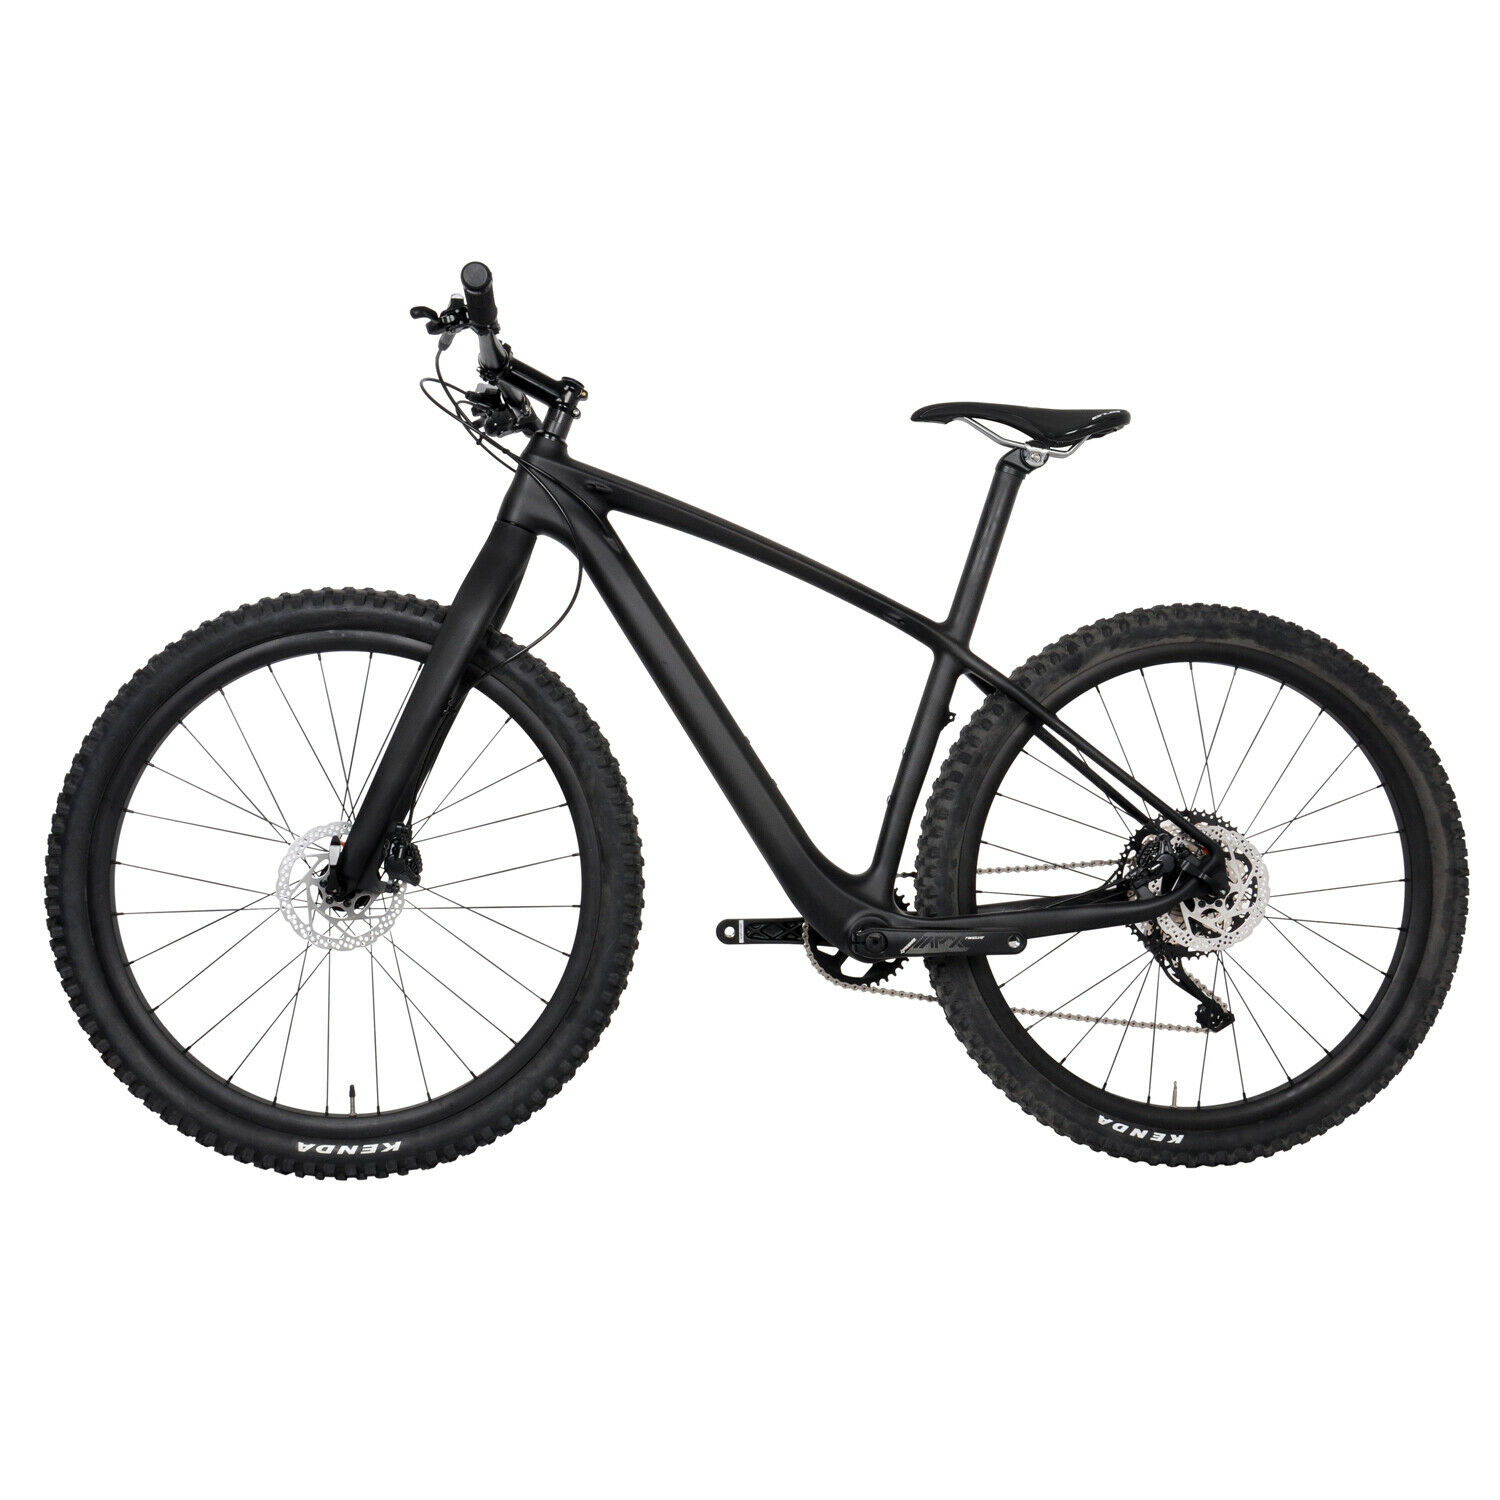 NEW 29er Carbon Bike MTB Complete Mountain Bicycle Wheel 11s Fork Hardtail 21 XL